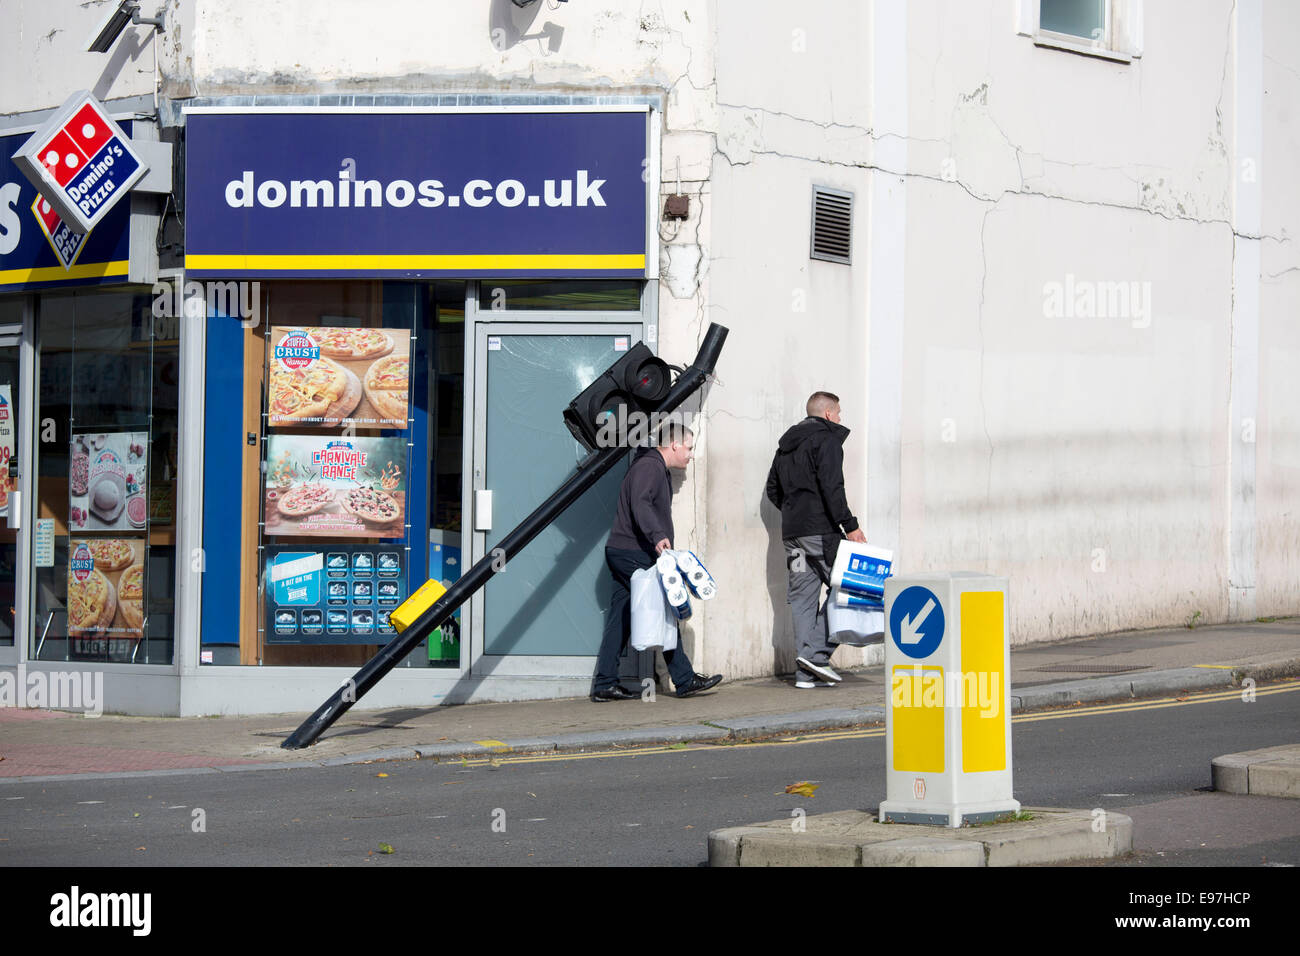 dominos pizza restaurant stock photos dominos pizza restaurant traffic light post bent hit dominos pizza stock image